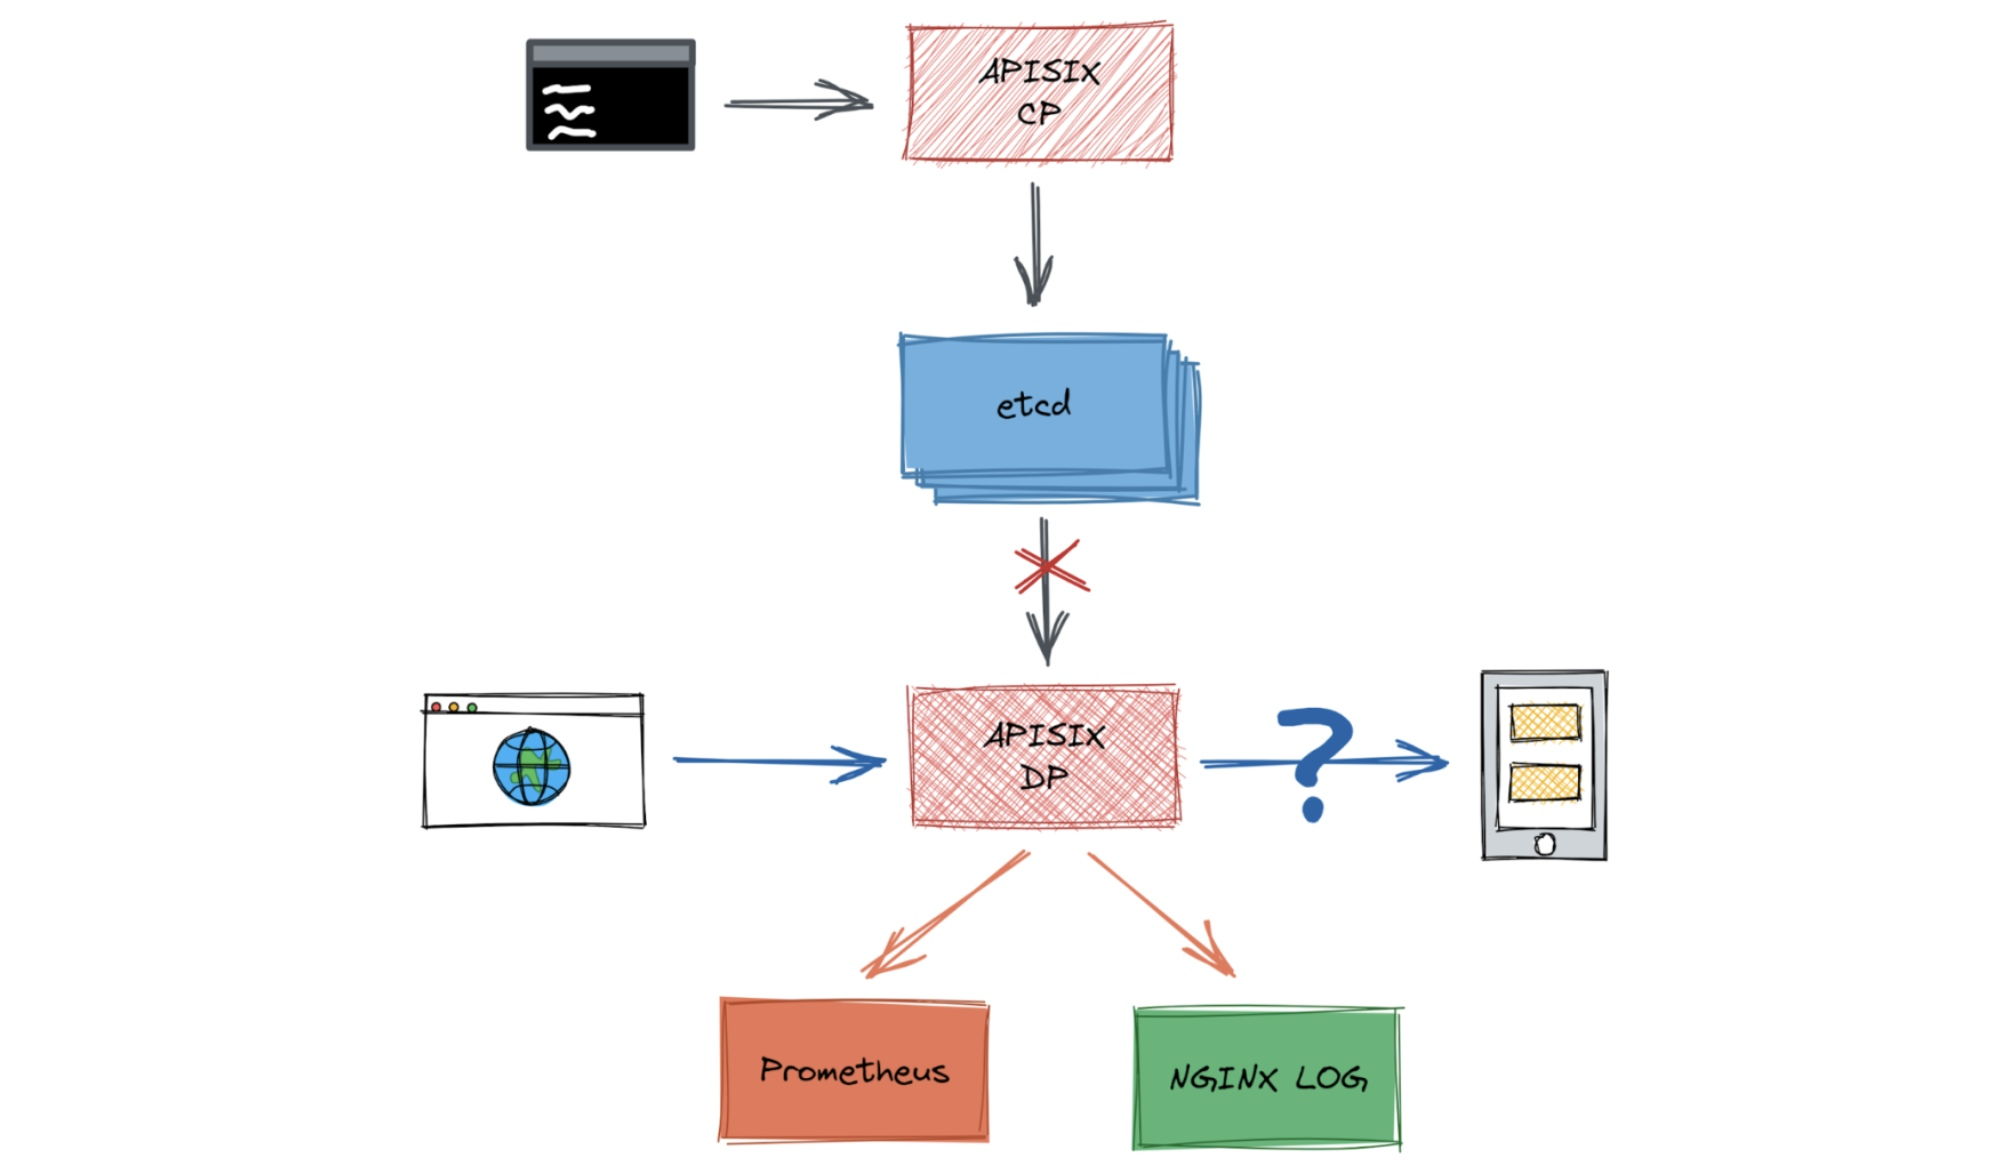 High network latency occurs between etcd and Apache APISIX